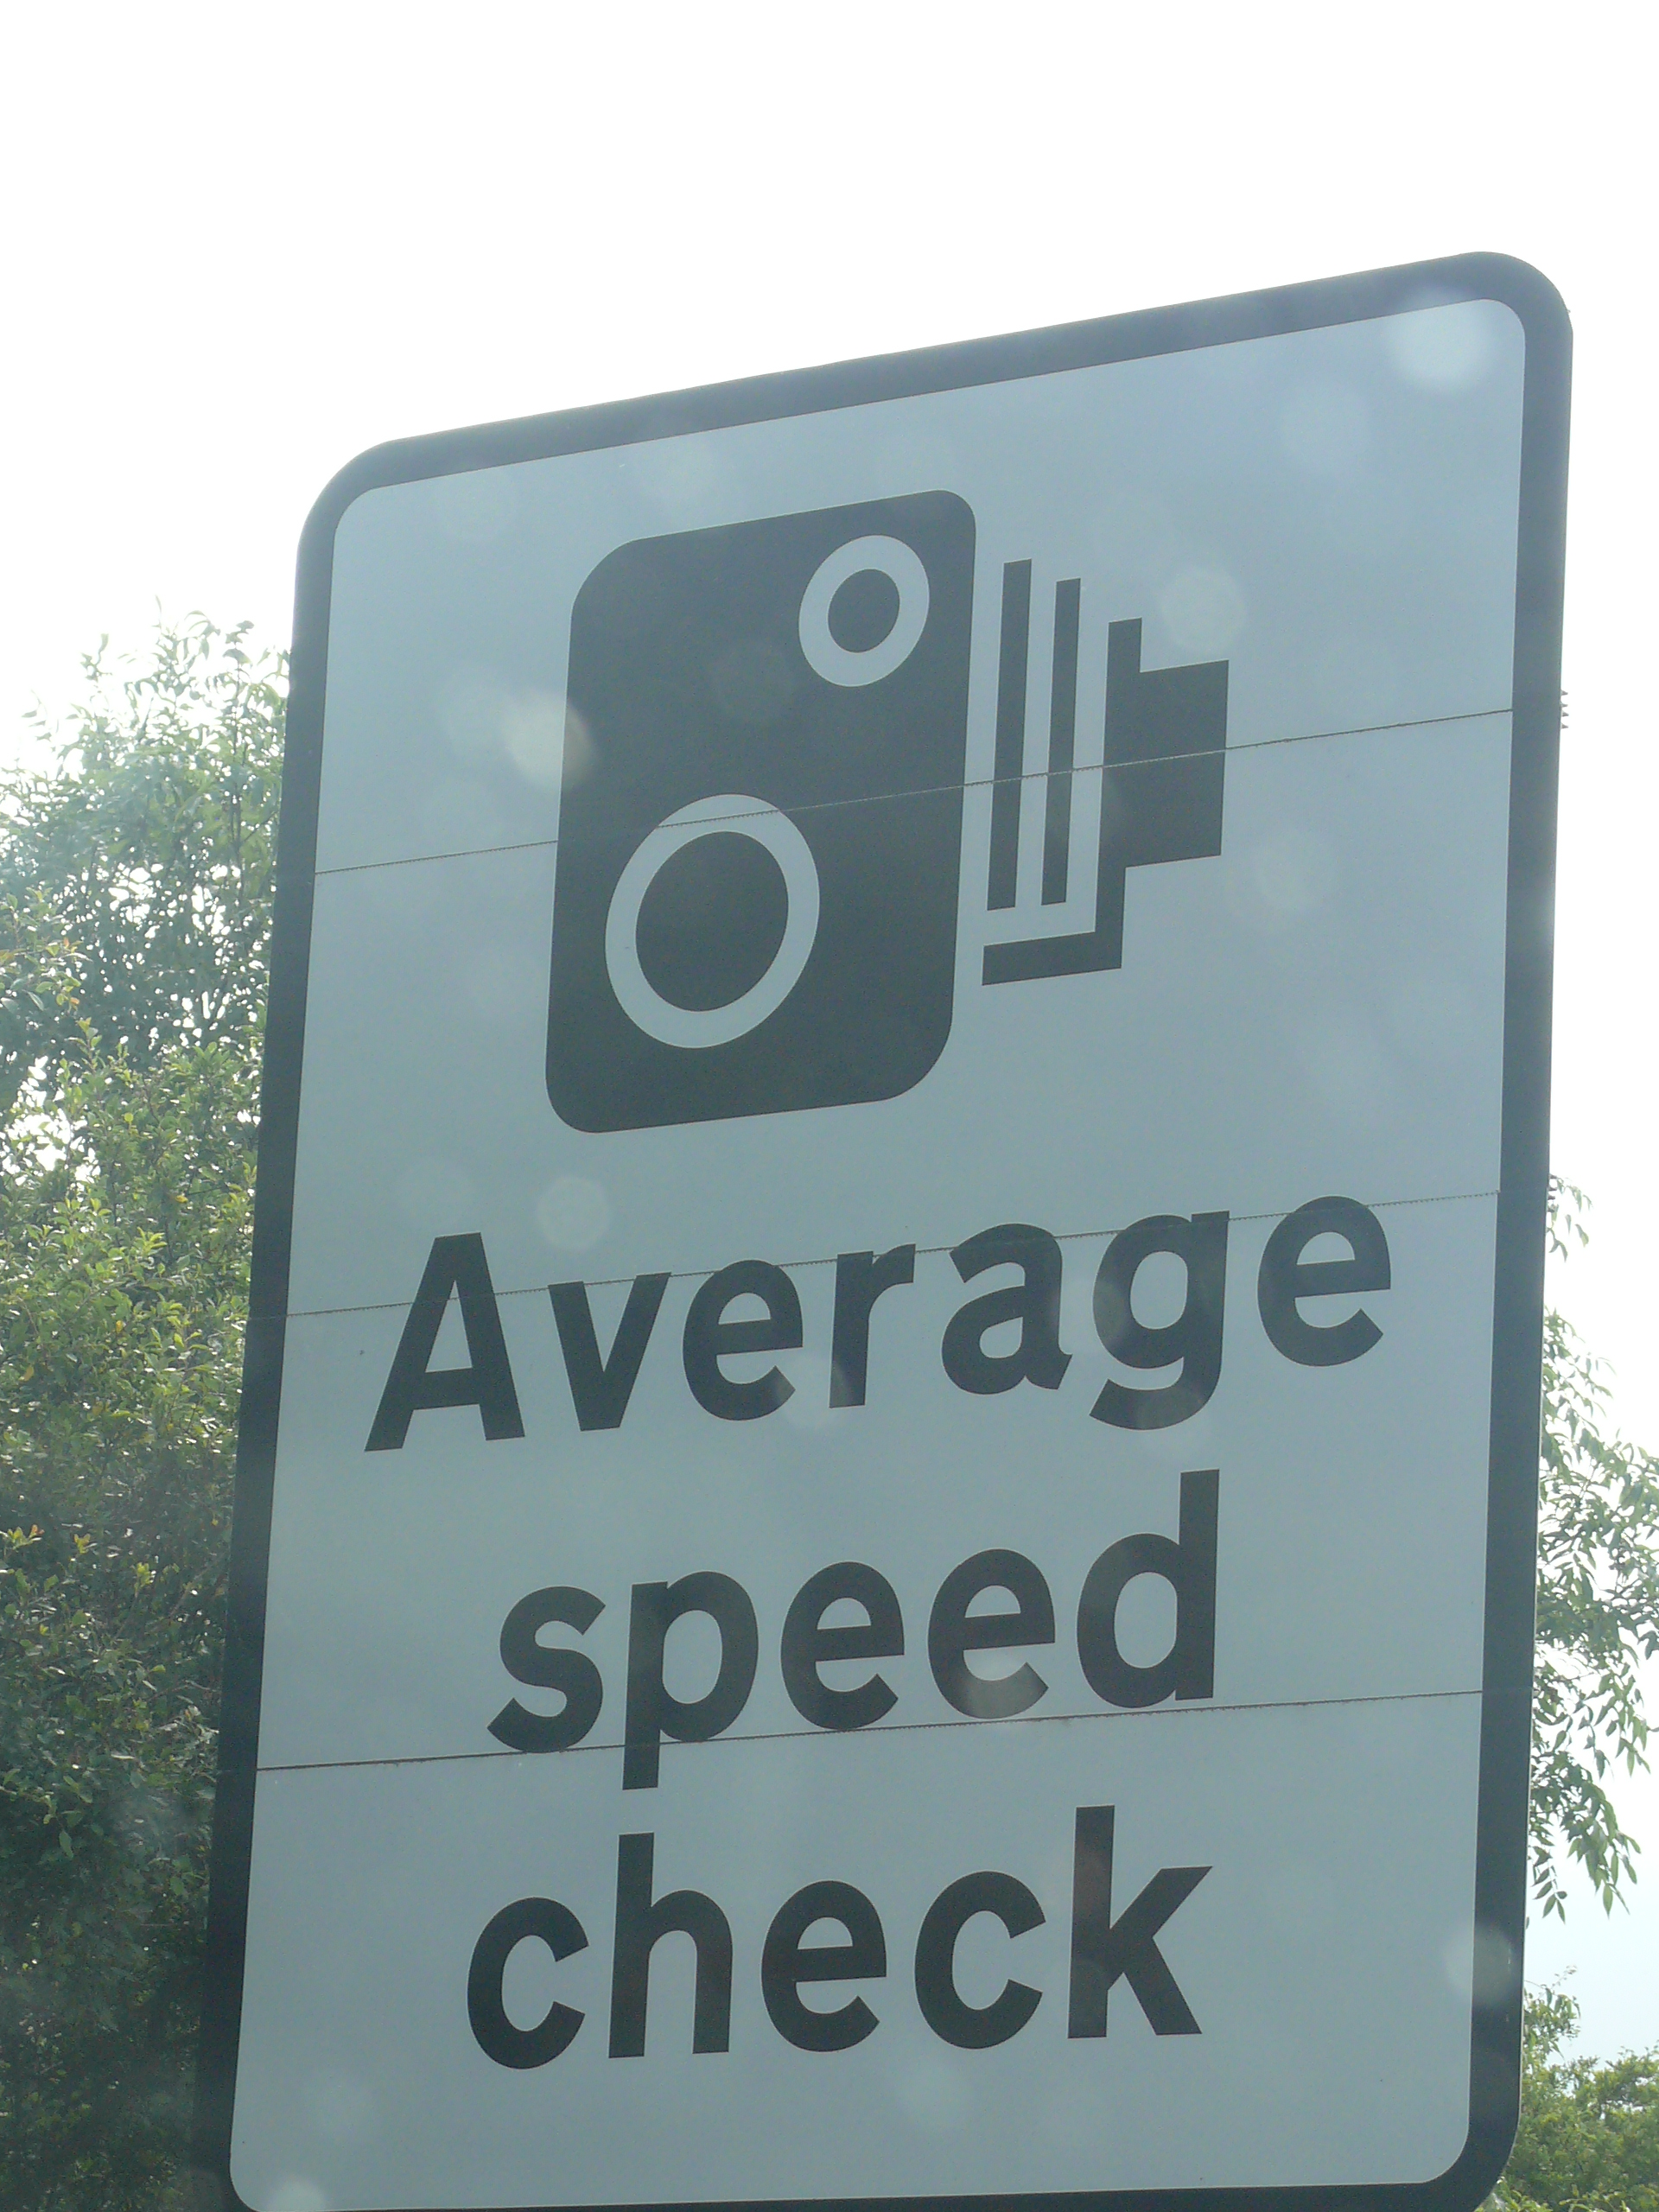 Average Speed Check Sign Nen Gallery. Sportswear Nike Banners. Dermatoglyphics Signs. Independence Day Stickers. Hogwarts Student Signs. Line Decals. Label Printing Companies. Orthography Lettering. Fishing Company Stickers